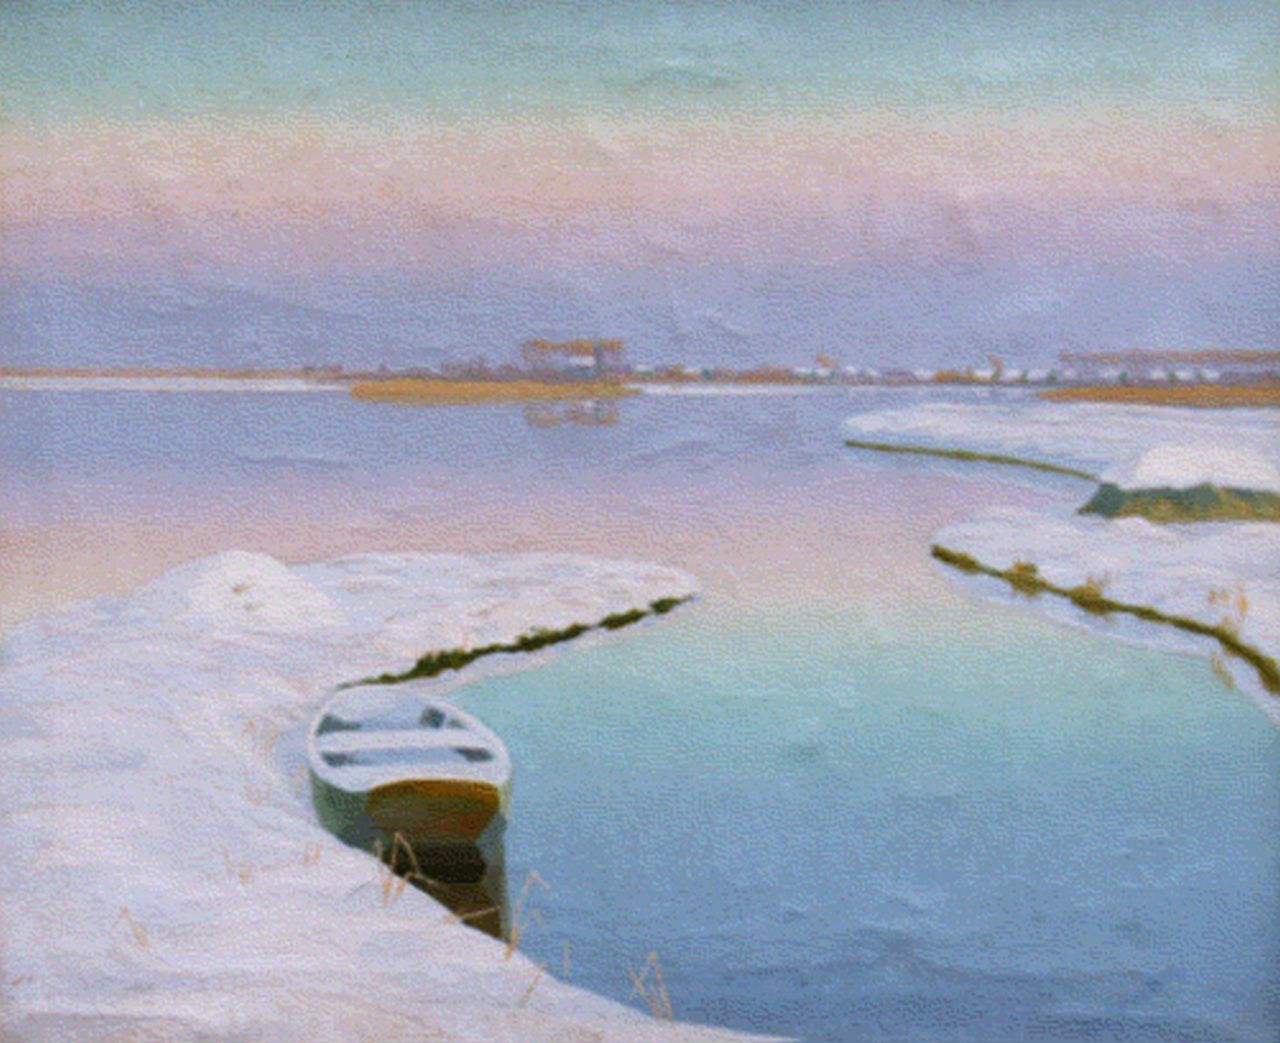 Smorenberg D.  | Dirk Smorenberg, A winter landscape, oil on canvas 50.5 x 60.0 cm, signed l.r.